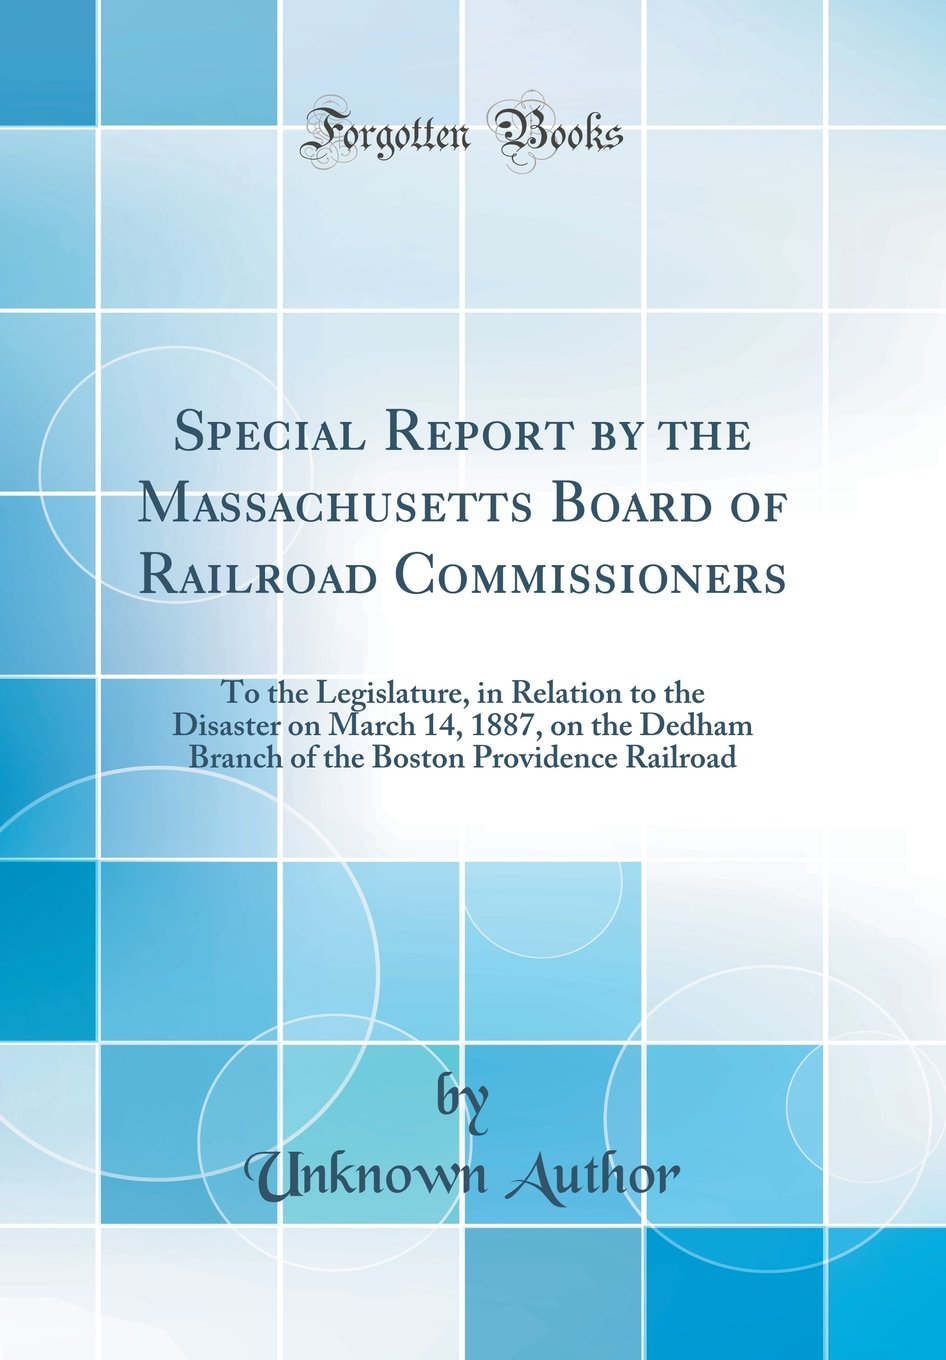 Read Online Special Report by the Massachusetts Board of Railroad Commissioners: To the Legislature, in Relation to the Disaster on March 14, 1887, on the Dedham Boston Providence Railroad (Classic Reprint) pdf